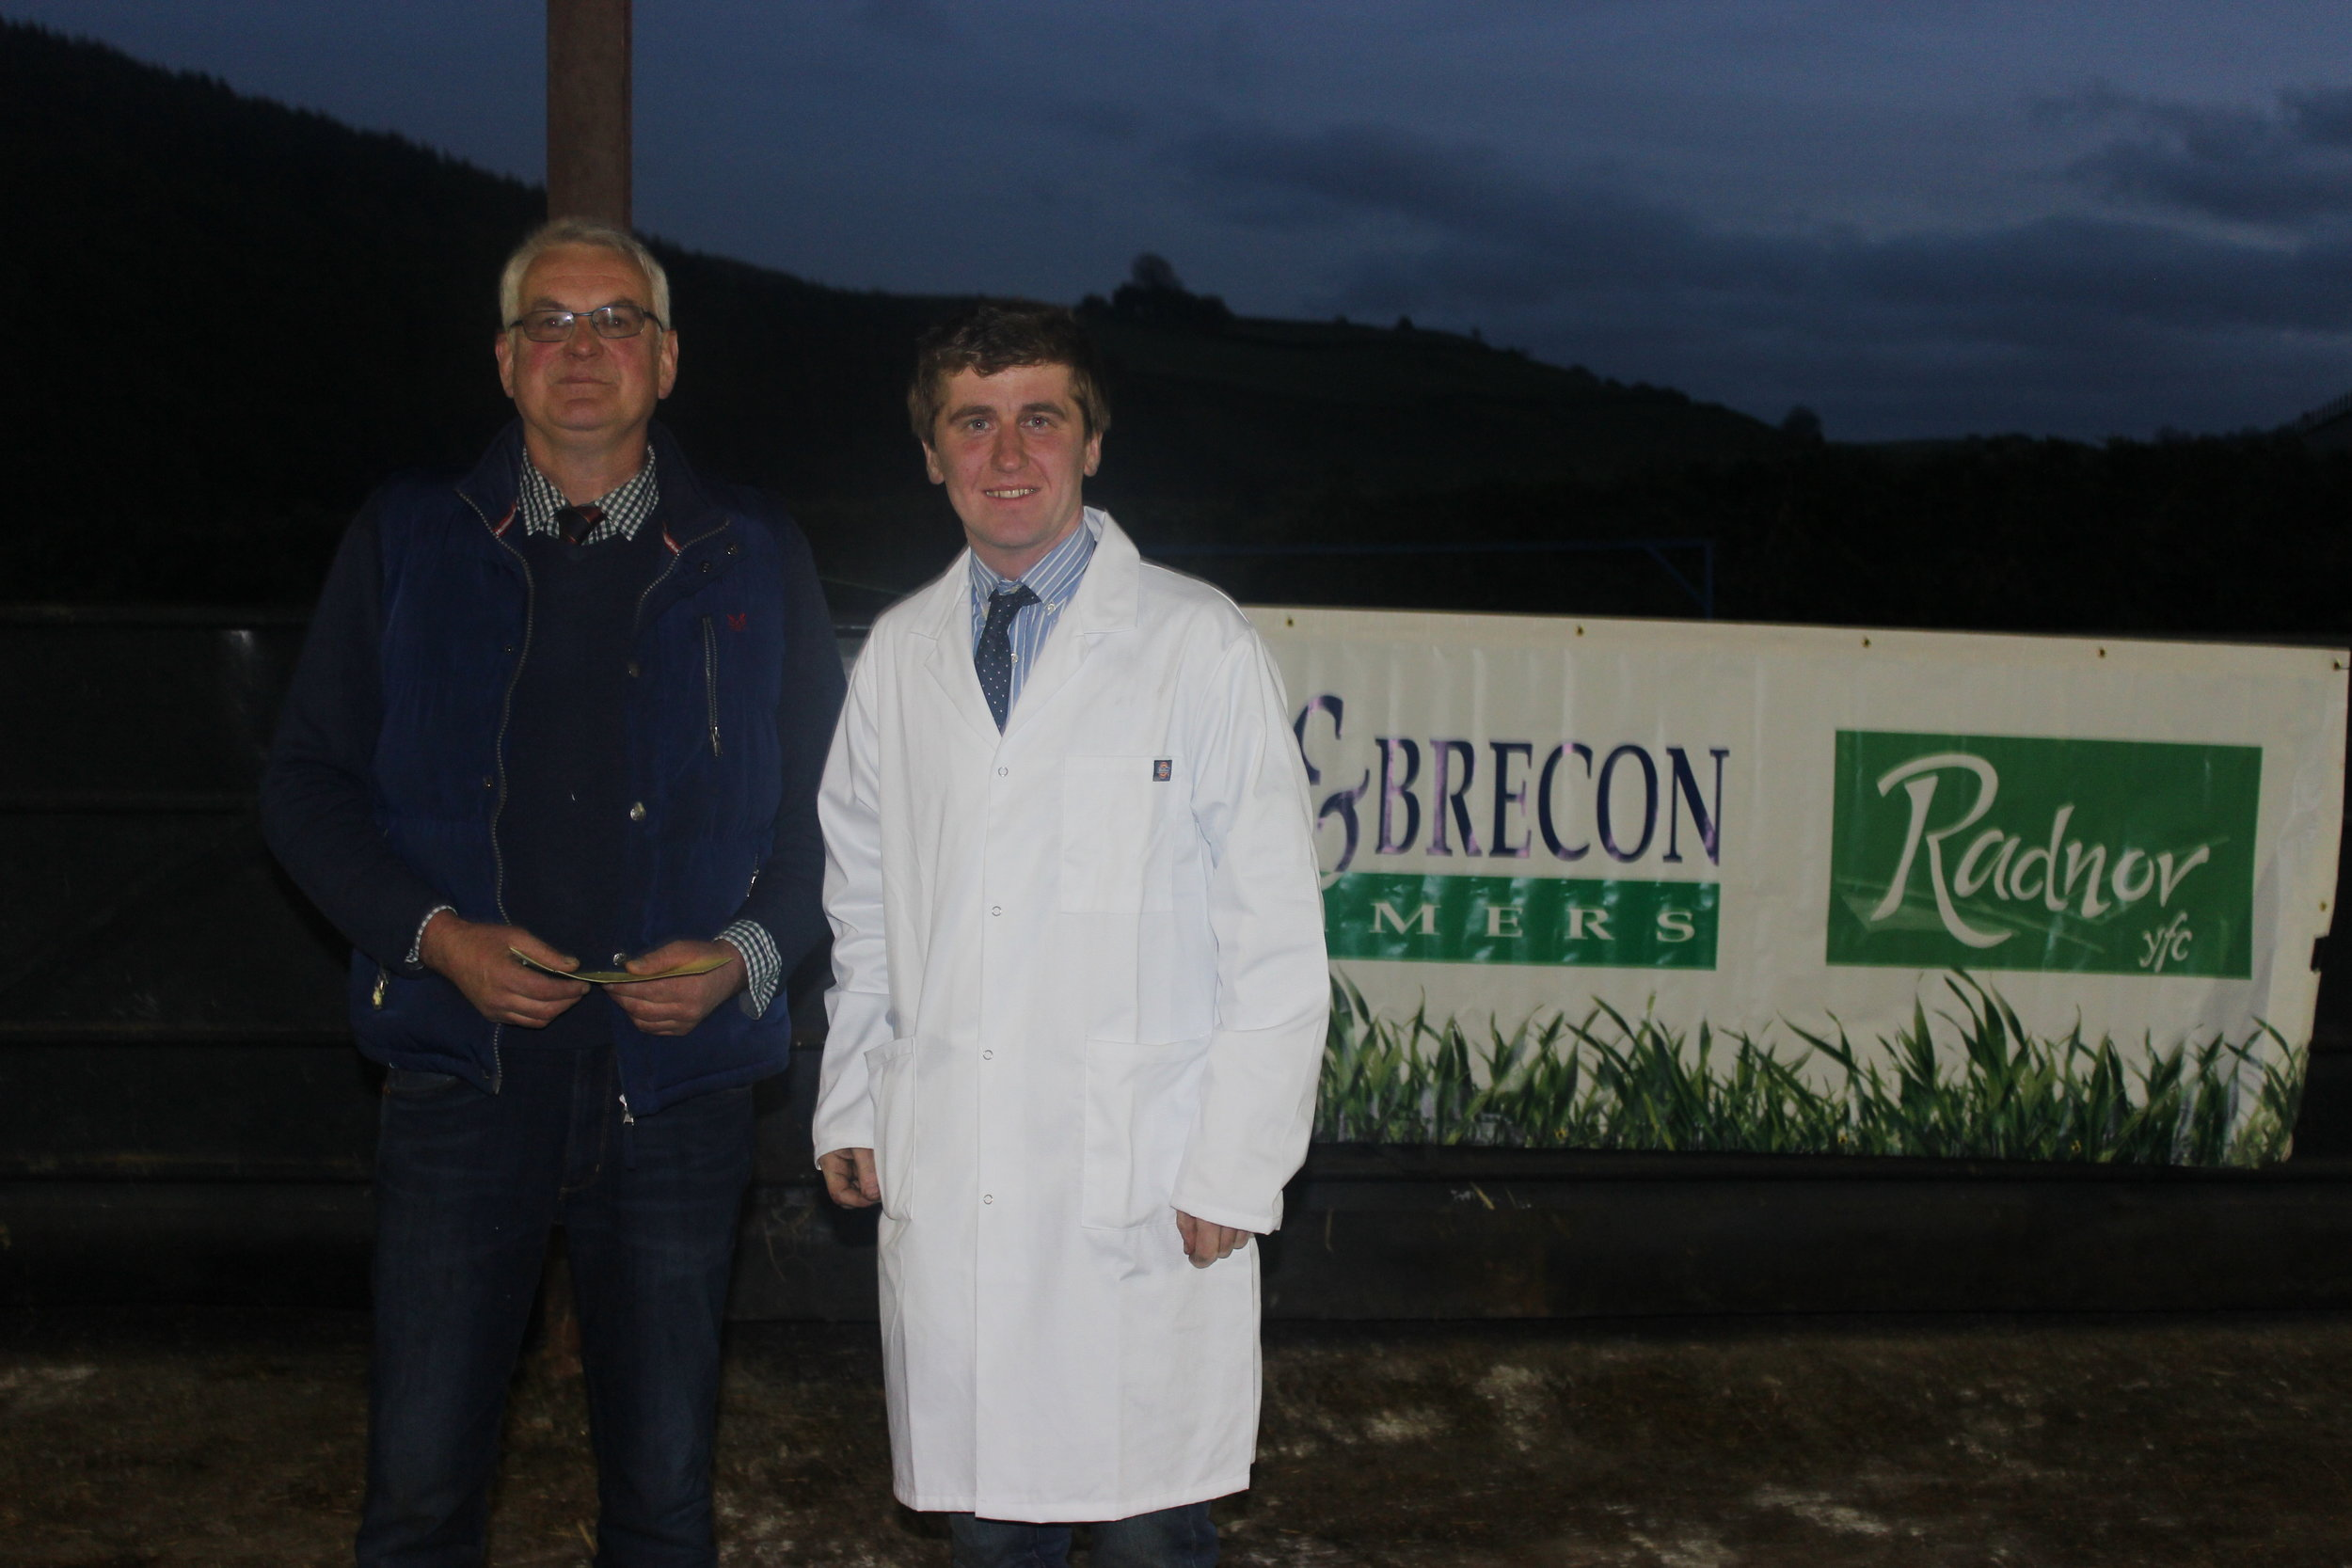 Tom Harris, Teme Valley YFC - 3rd place in the Under 26 Welsh Mule Stockjudging with Judge Morton Powell.